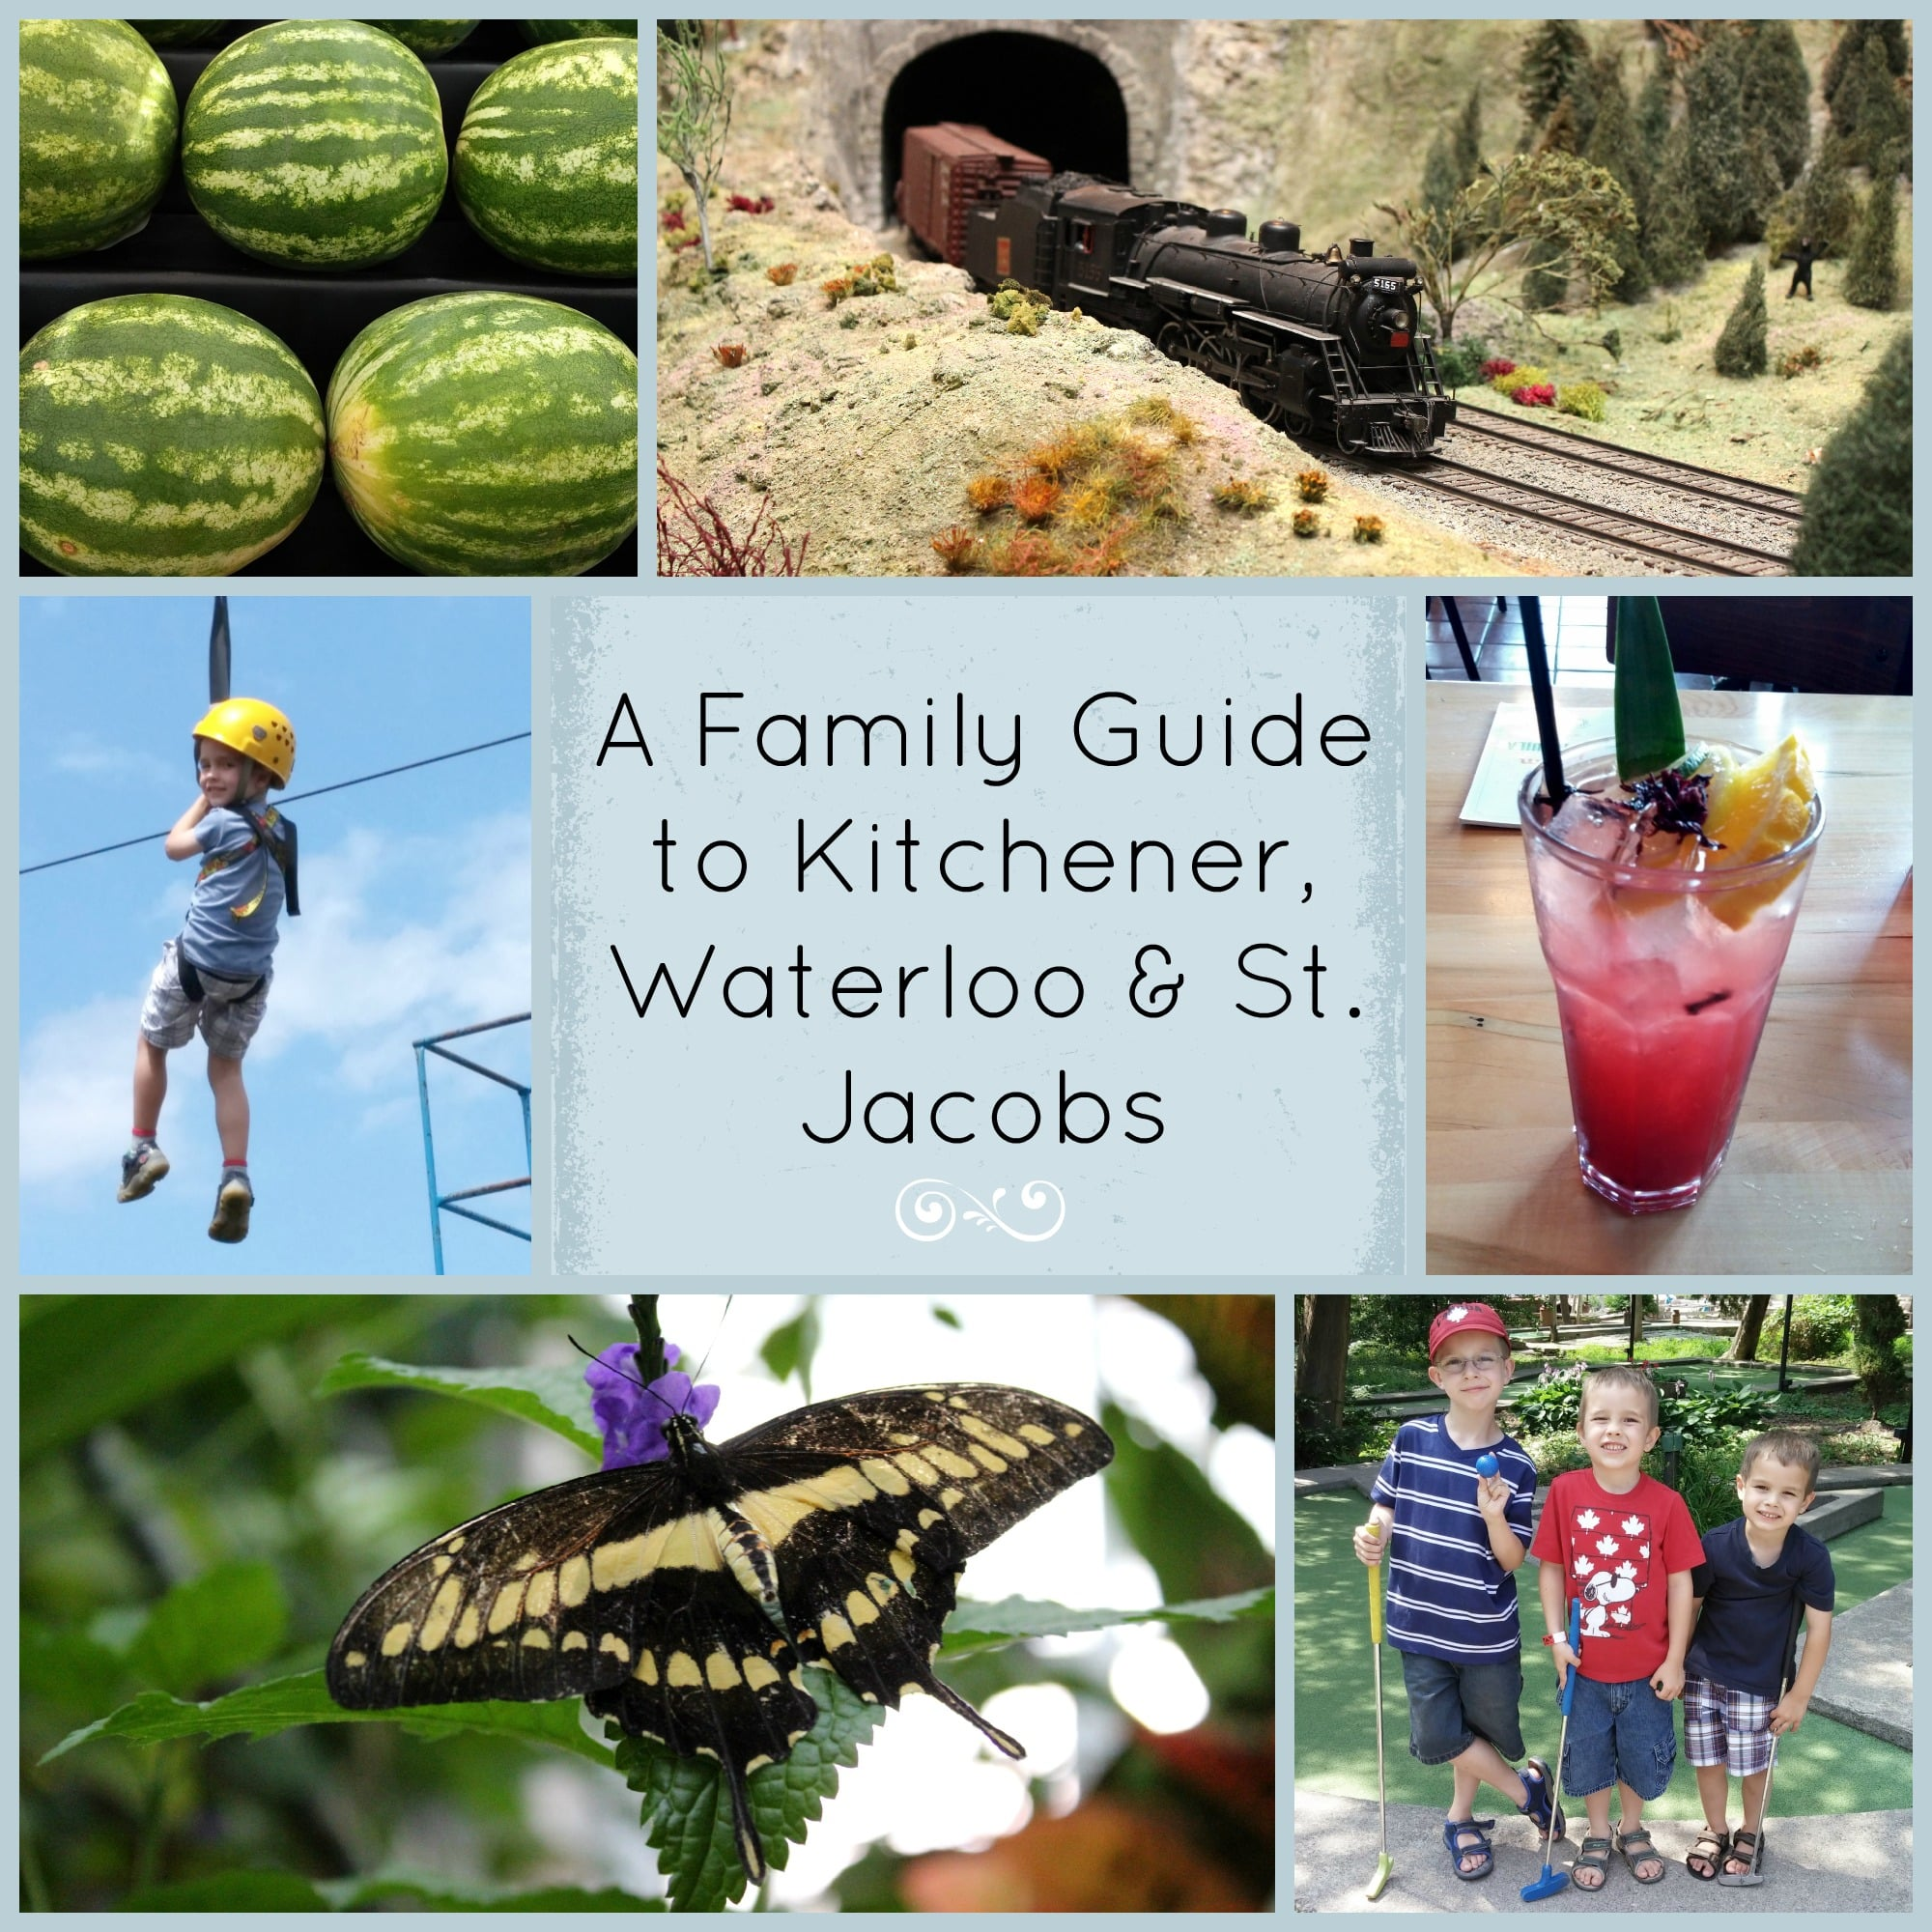 A Family Guide to a two day stay in the Waterloo Region